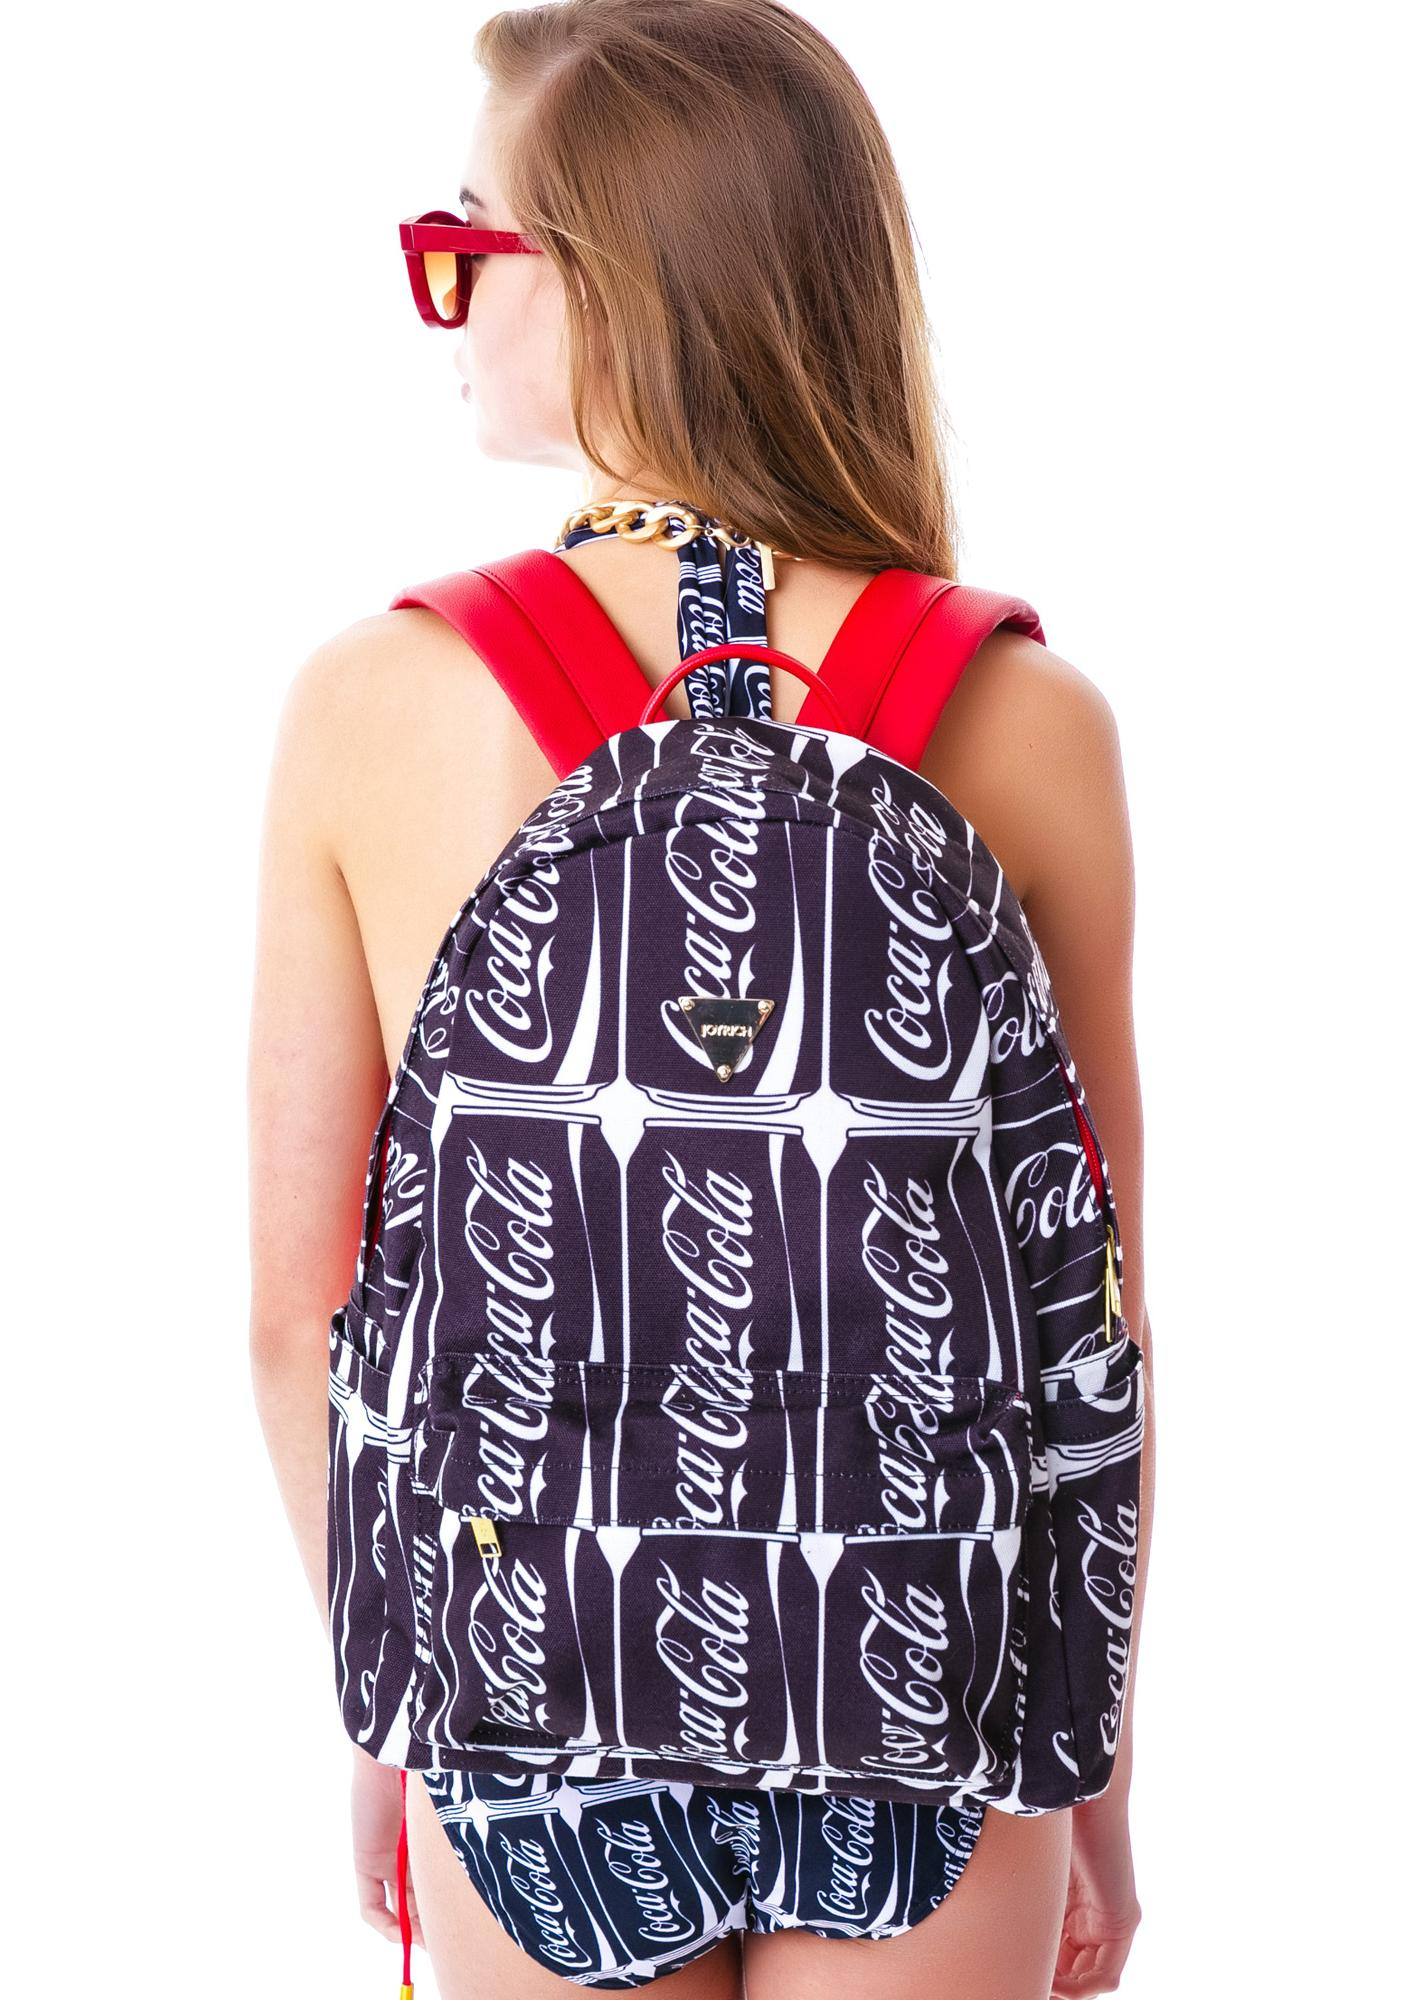 Joyrich Coco-Cola Backpack